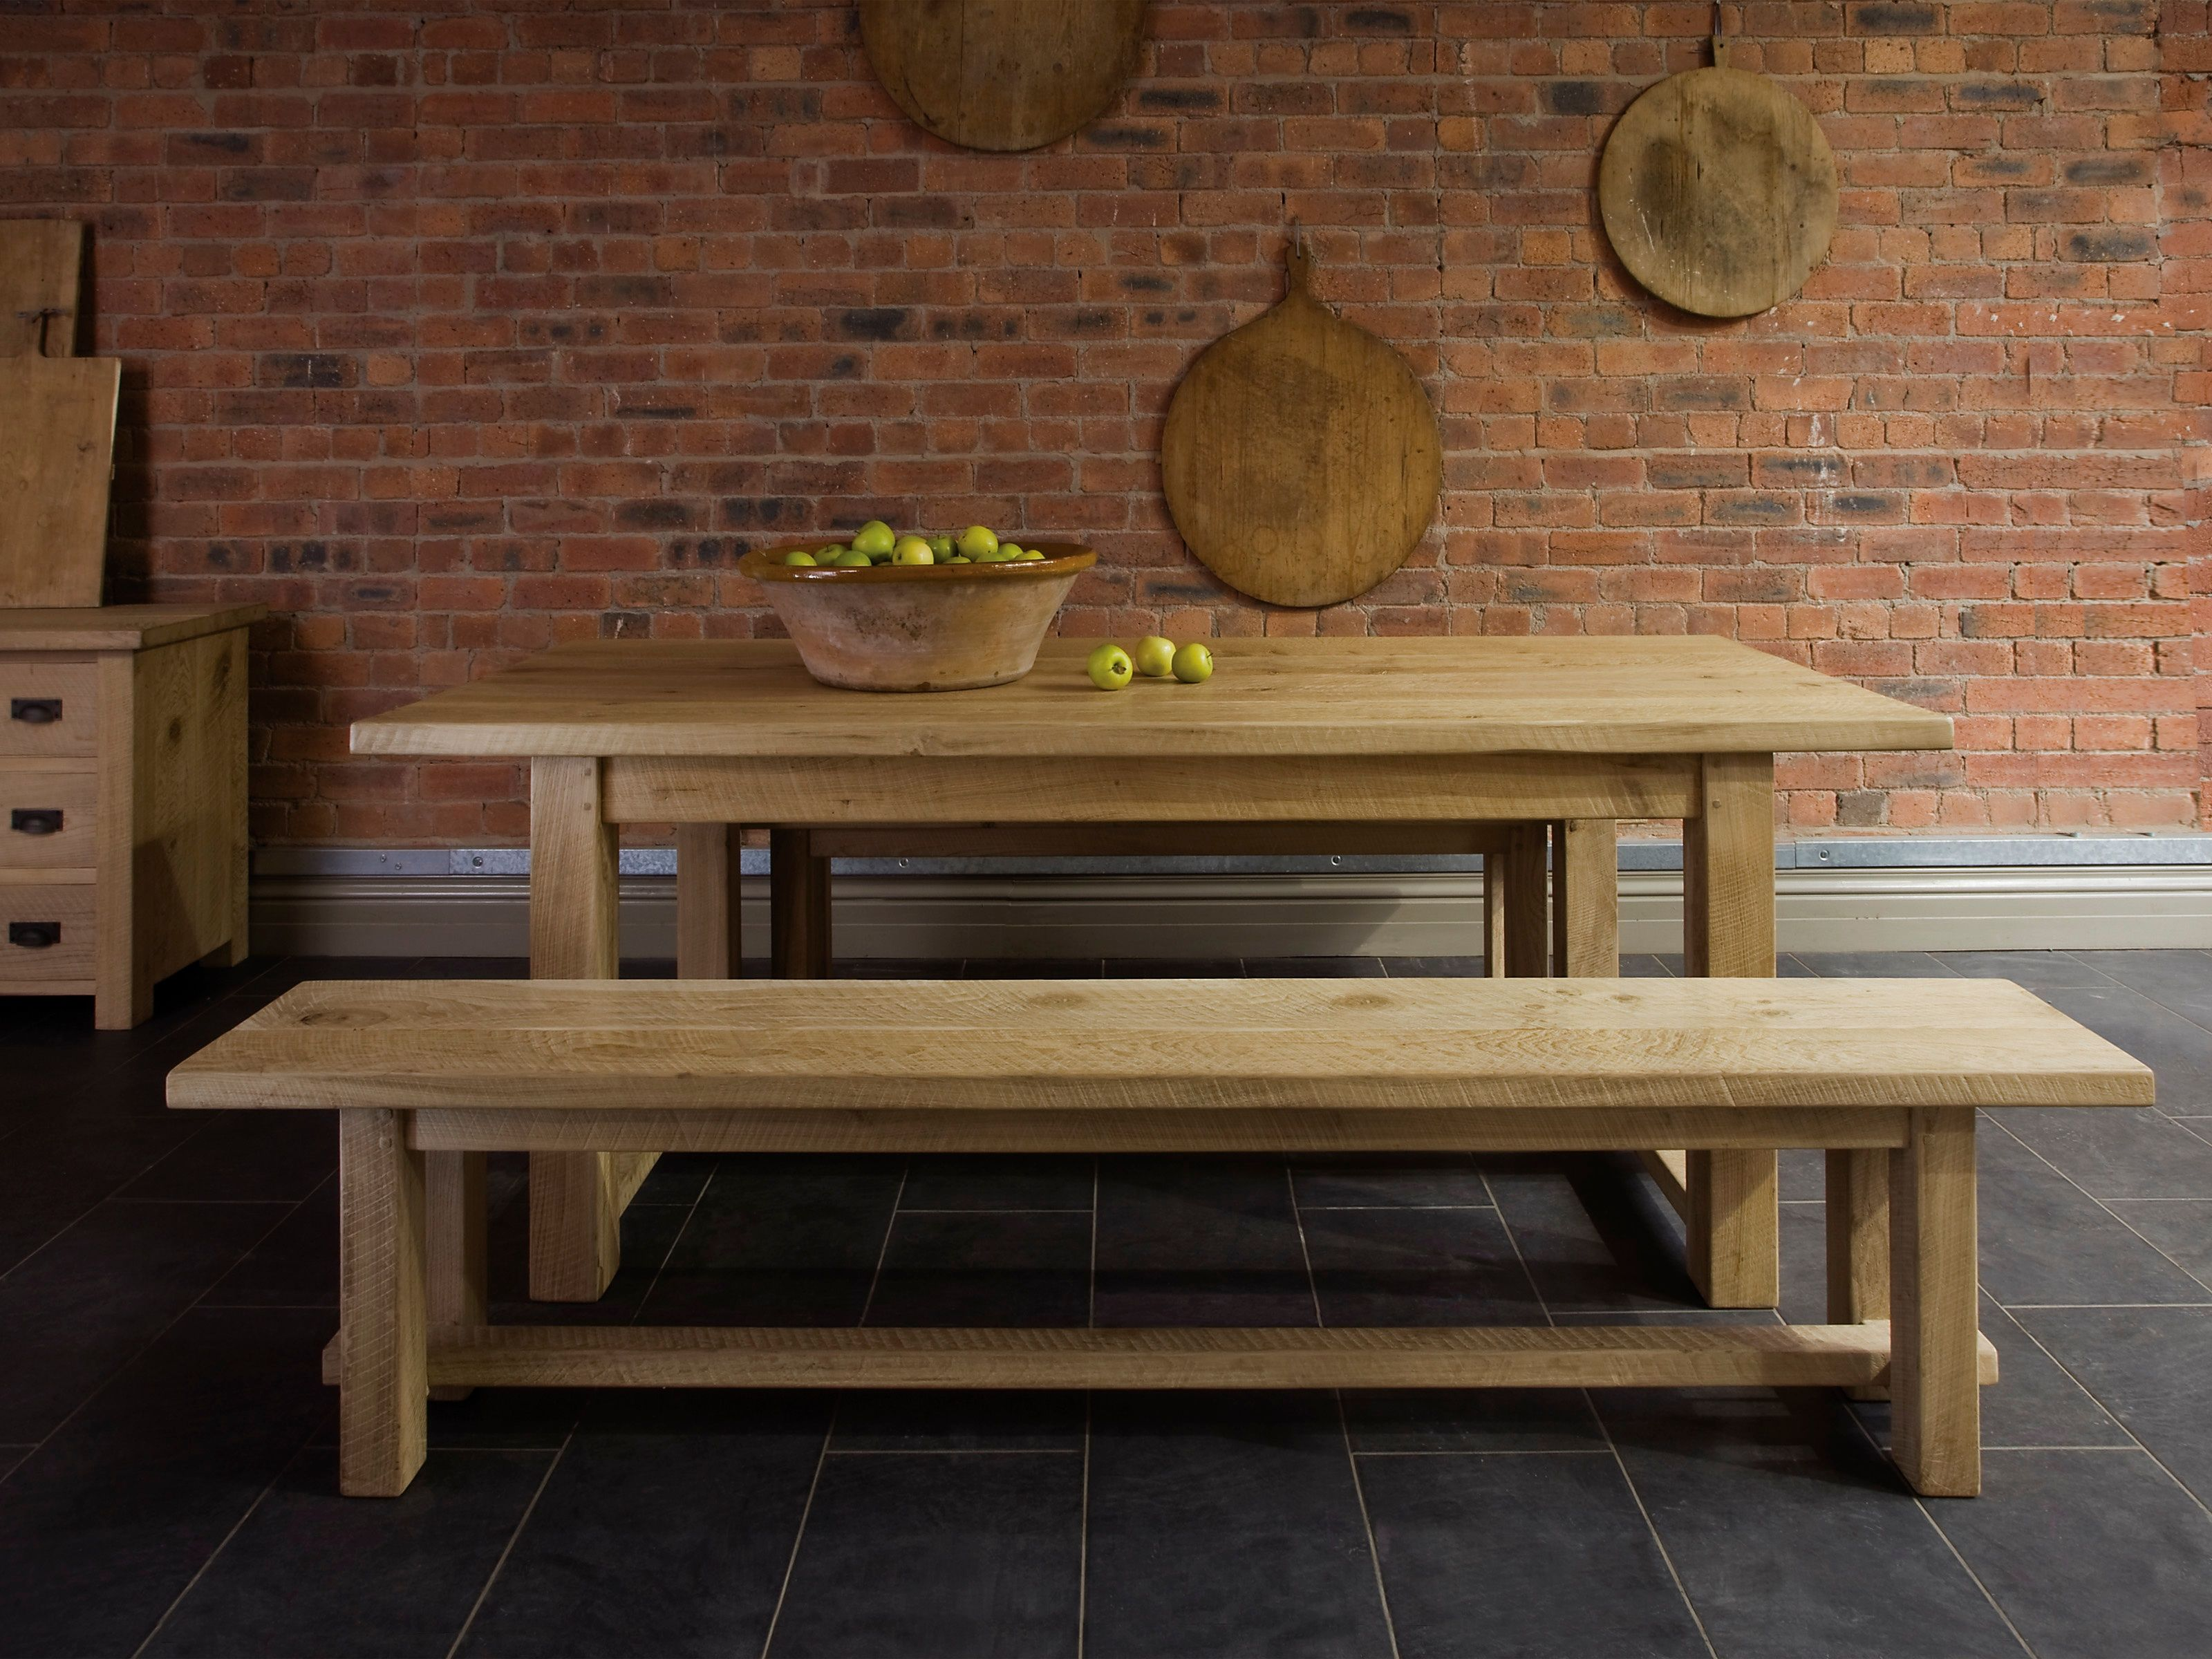 wooden kitchen table Farmhouse wooden kitchen tables for interior designs will be best suited in rustic country styles Farmhouse kitchen tables generally constructed from oak